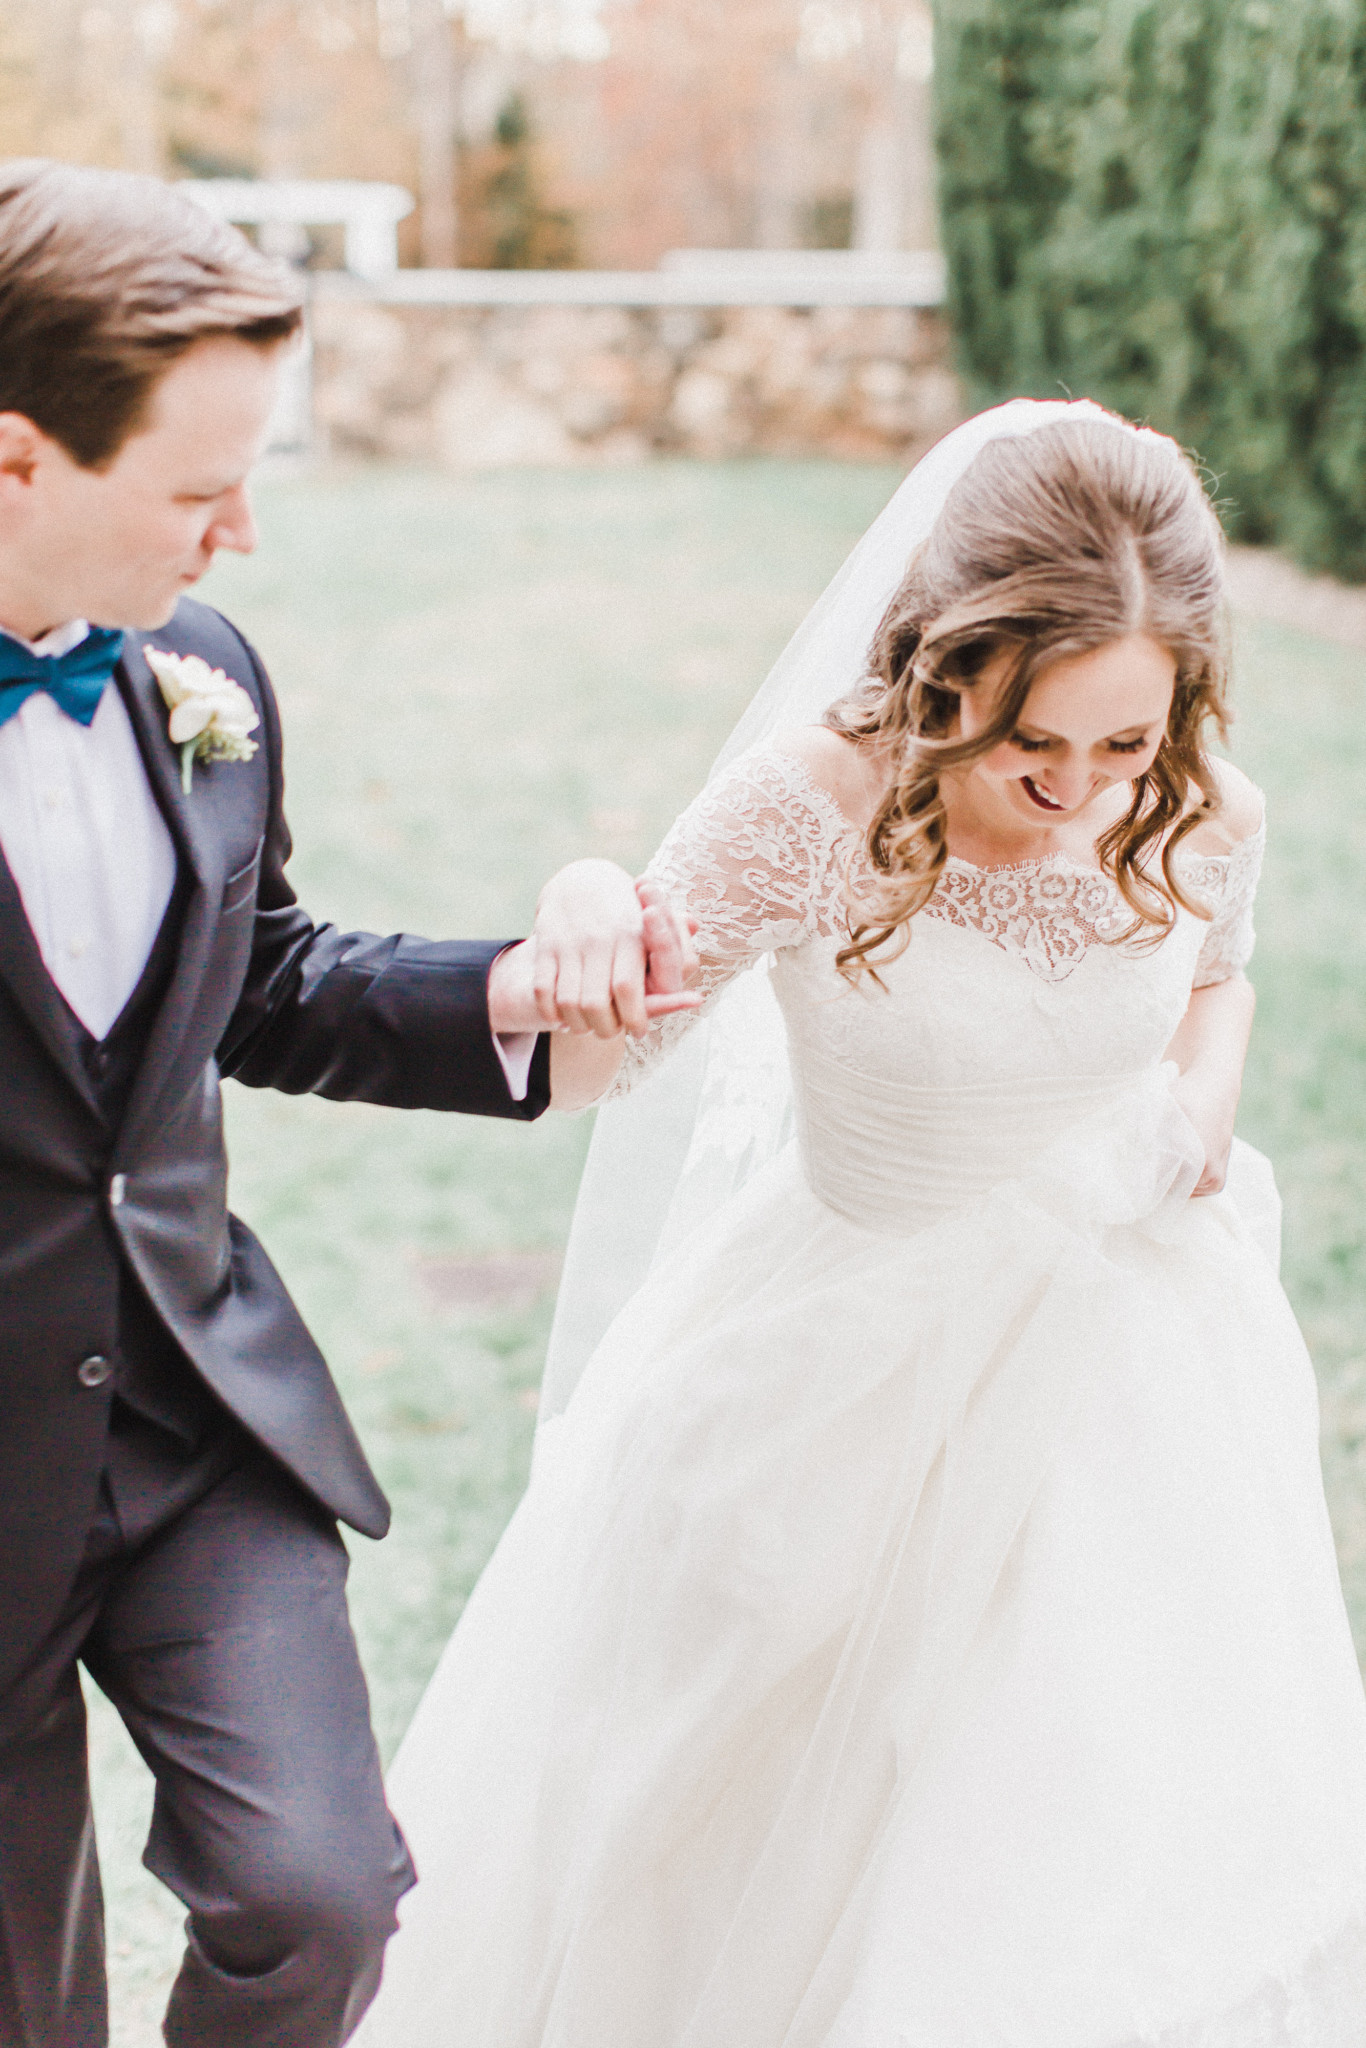 Glint Events, Wedding Planner, Wedding Coordinator, Wedding Stylist, Richmond Wedding, Richmond Weddings, Virginia Wedding, Dover Hall Estate, Fall Wedding, Annamarie Akins Photography, November Wedding, Bachelor Boys Band, Mosaic Catering, Flowers Make Scents, Avenue 42